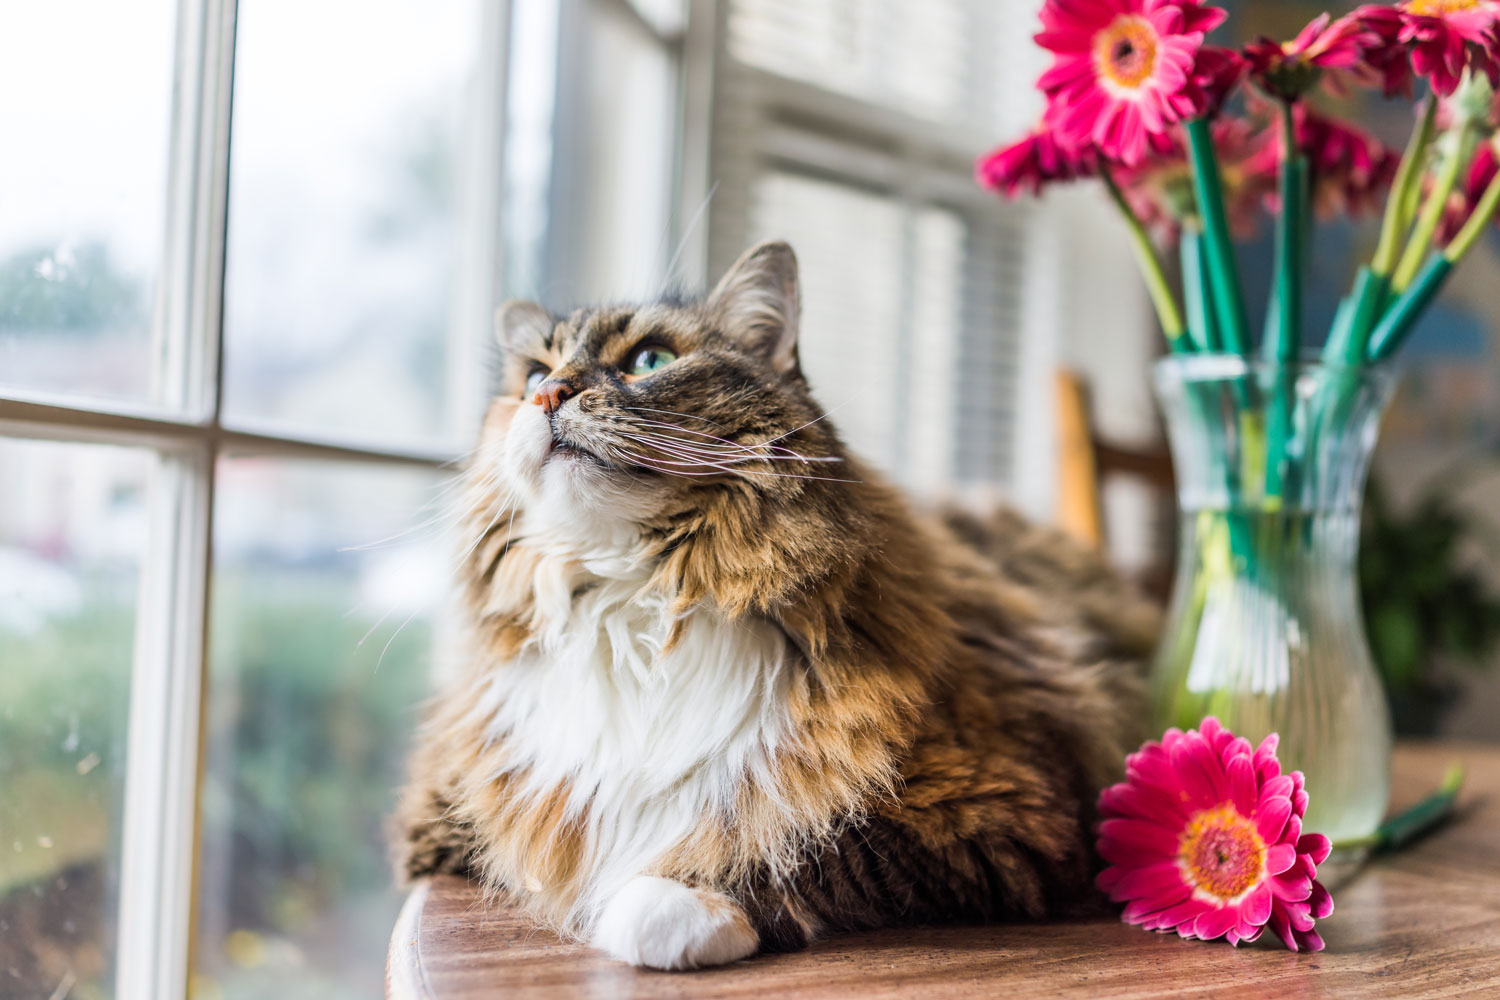 A Calico maine coon cat lying near a window with flowers on a vase at the background